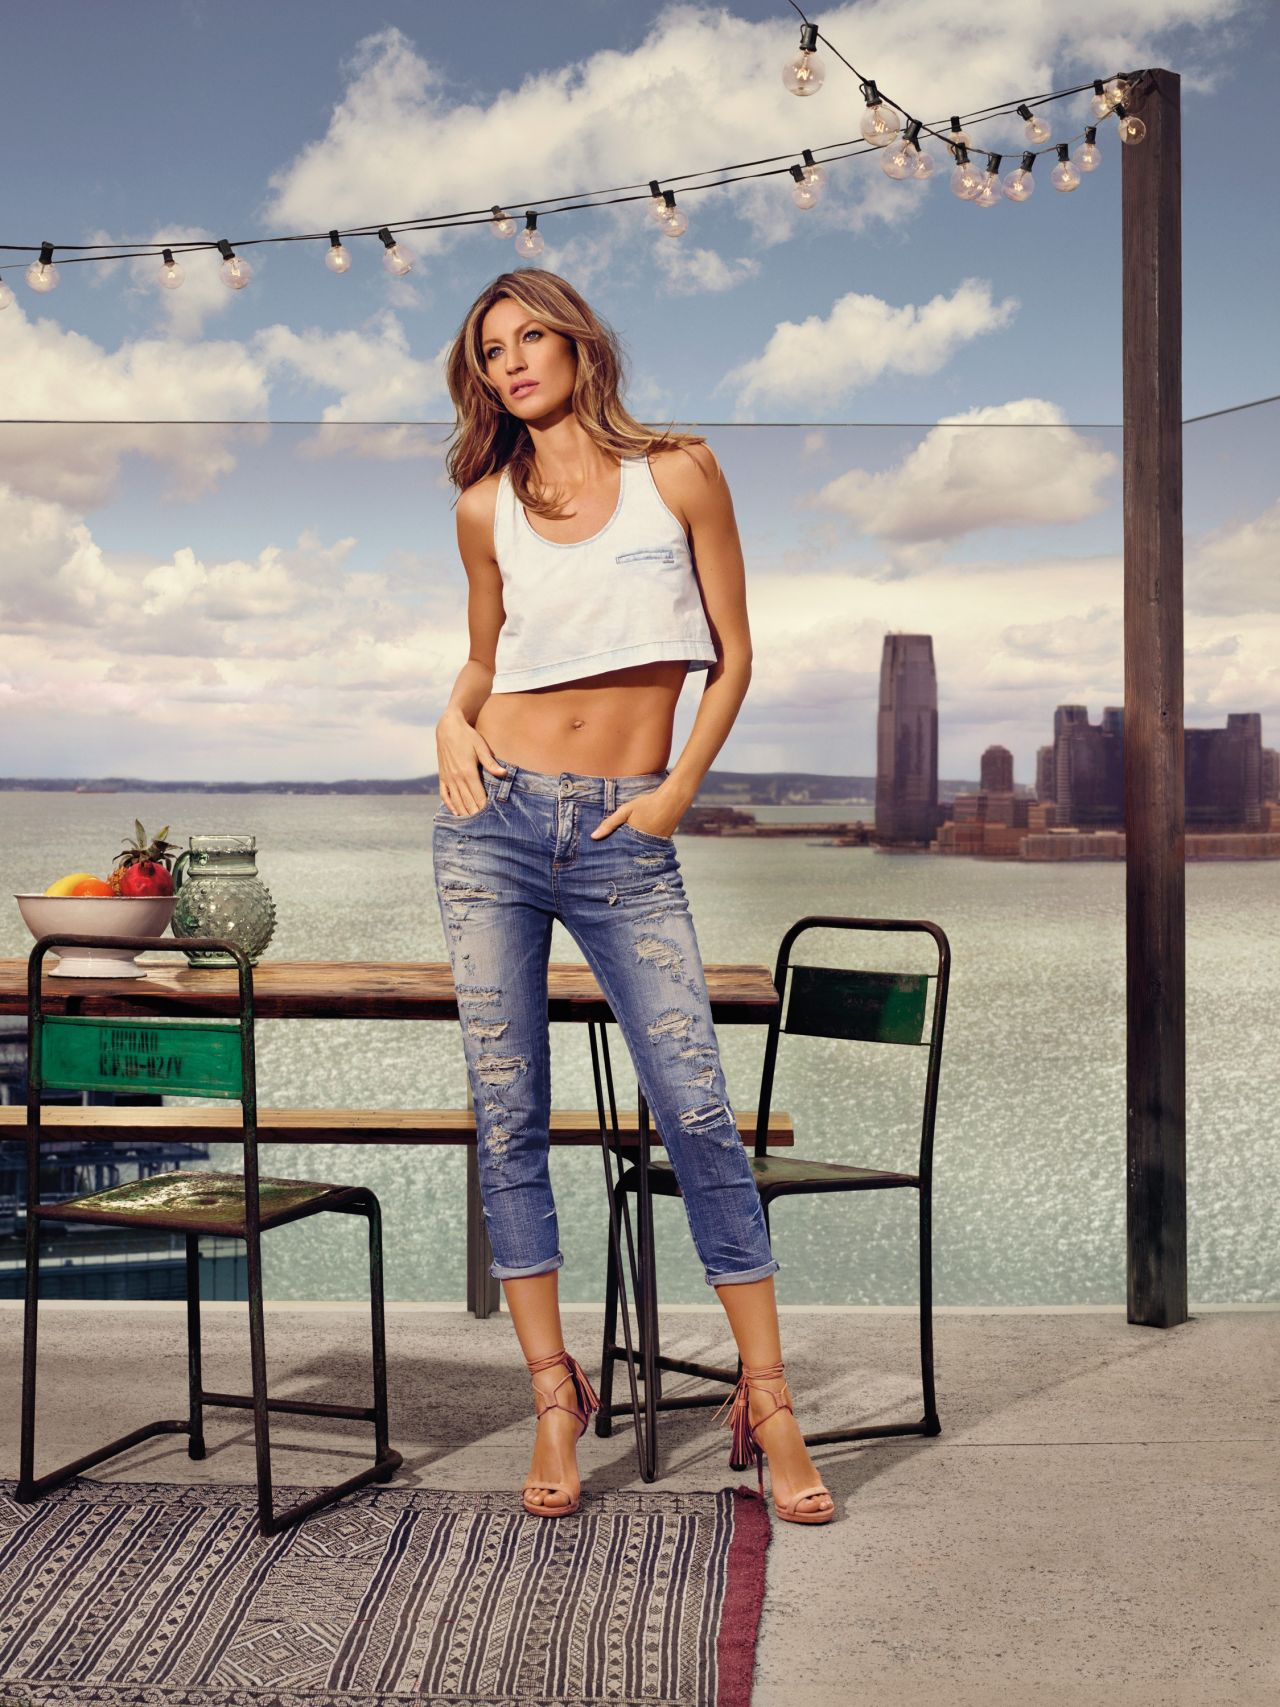 Gisele Bundchen - Photoshoot For Colcci Spring Summer 2016-7129